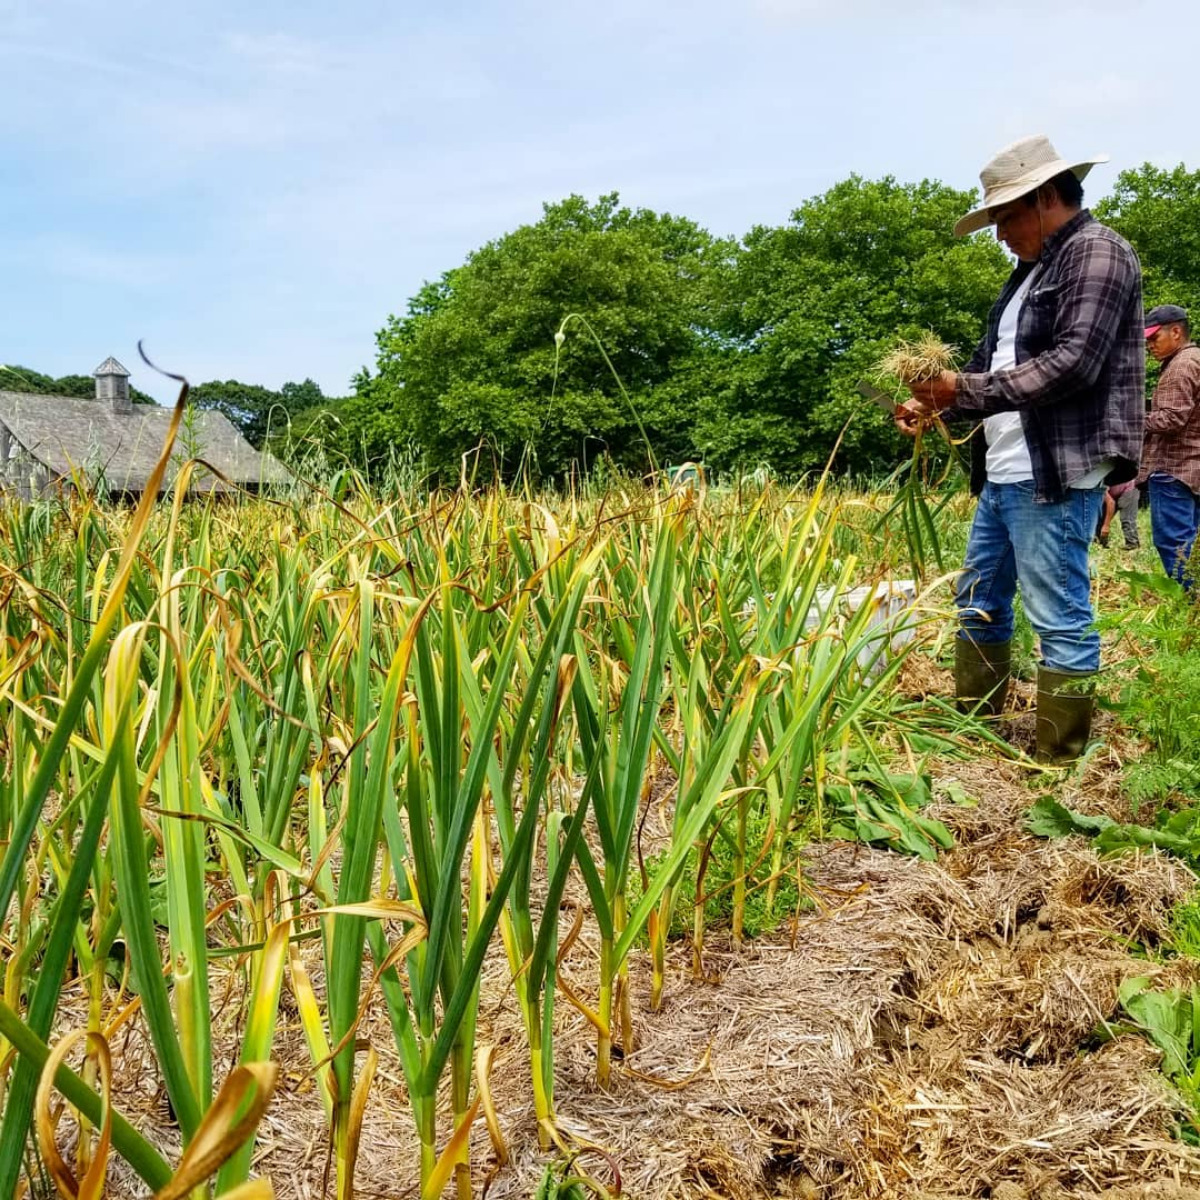 Rolando & the crew harvesting, cutting & cleaning garlic.